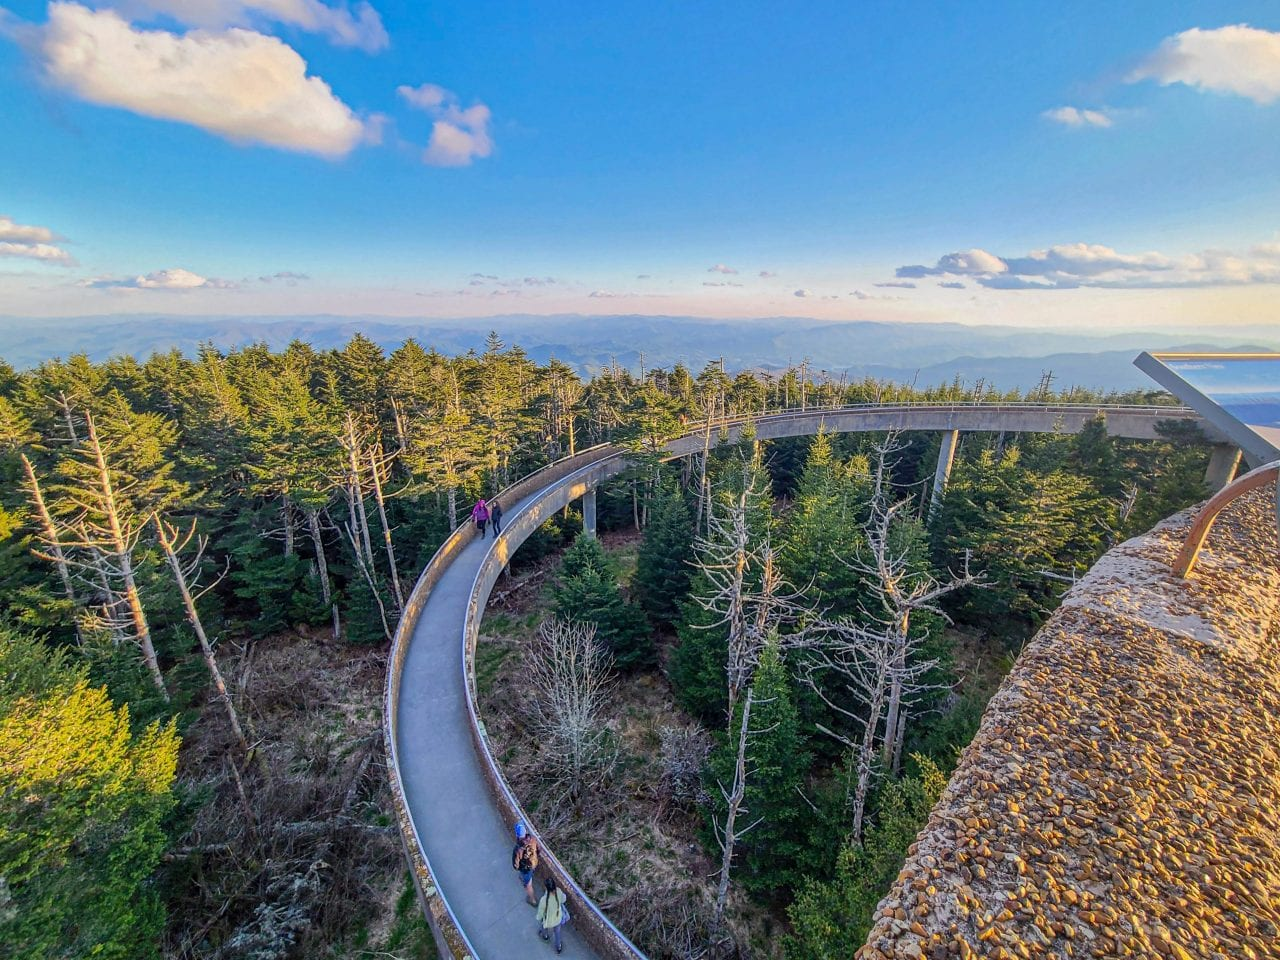 View from the Clingmans Dome observation tower